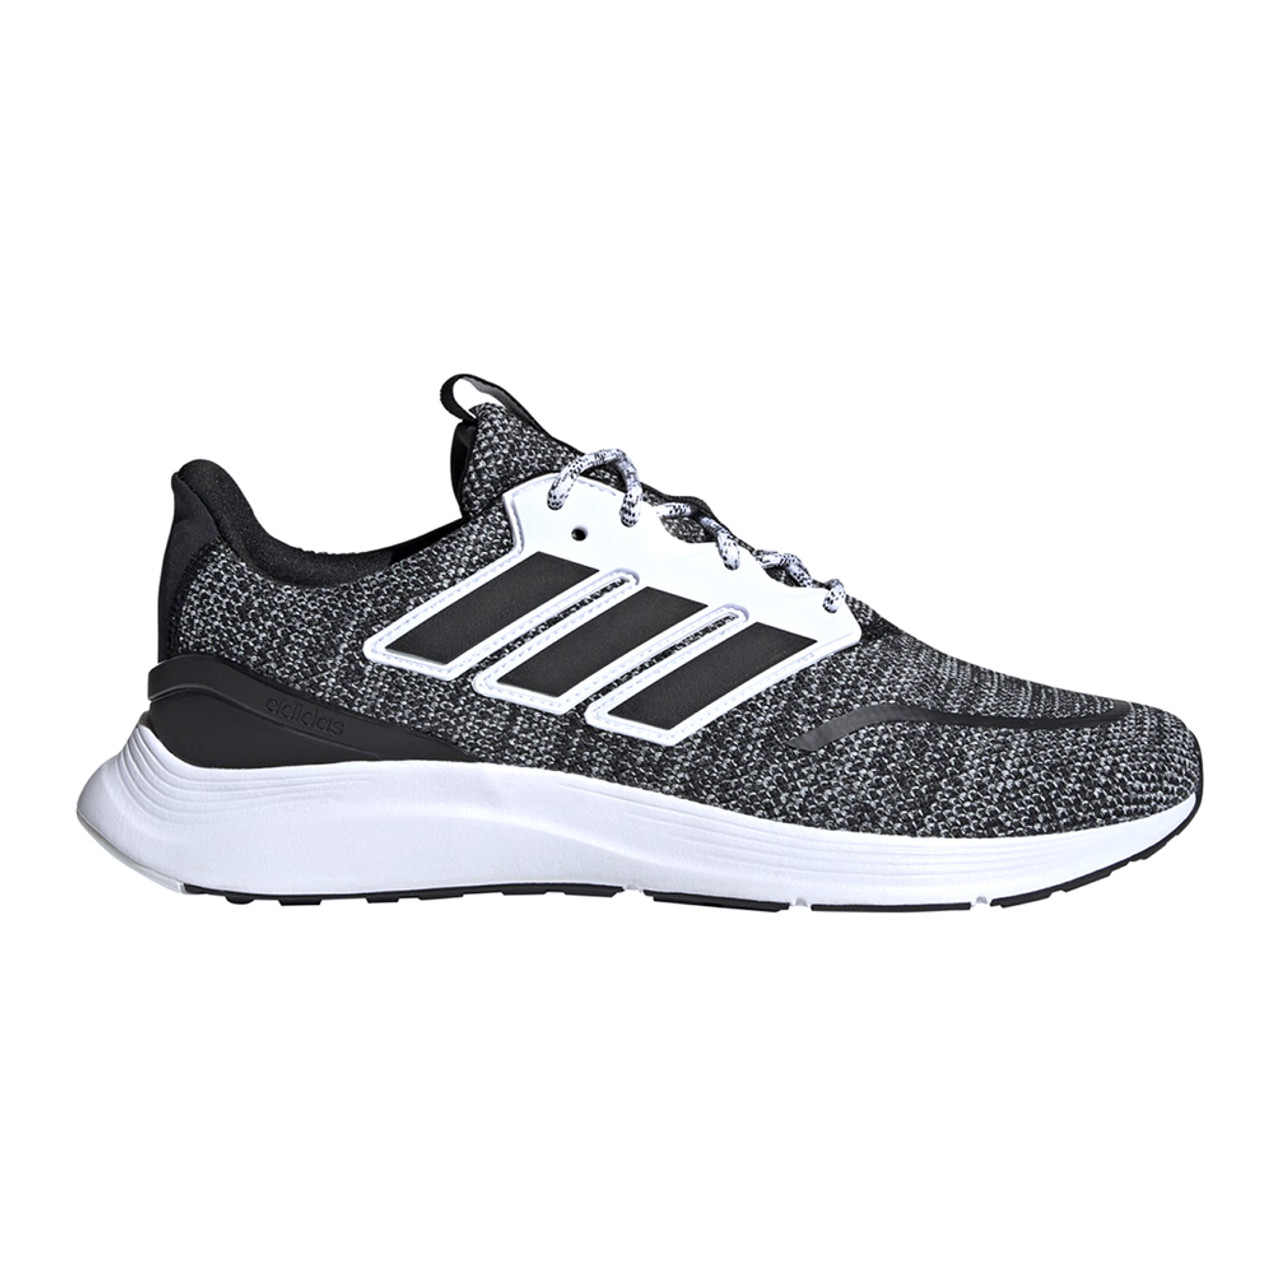 39e56423f Adidas Men's Energyfalcon Running Shoe Core Black/White - Shop now @  Shoolu.com